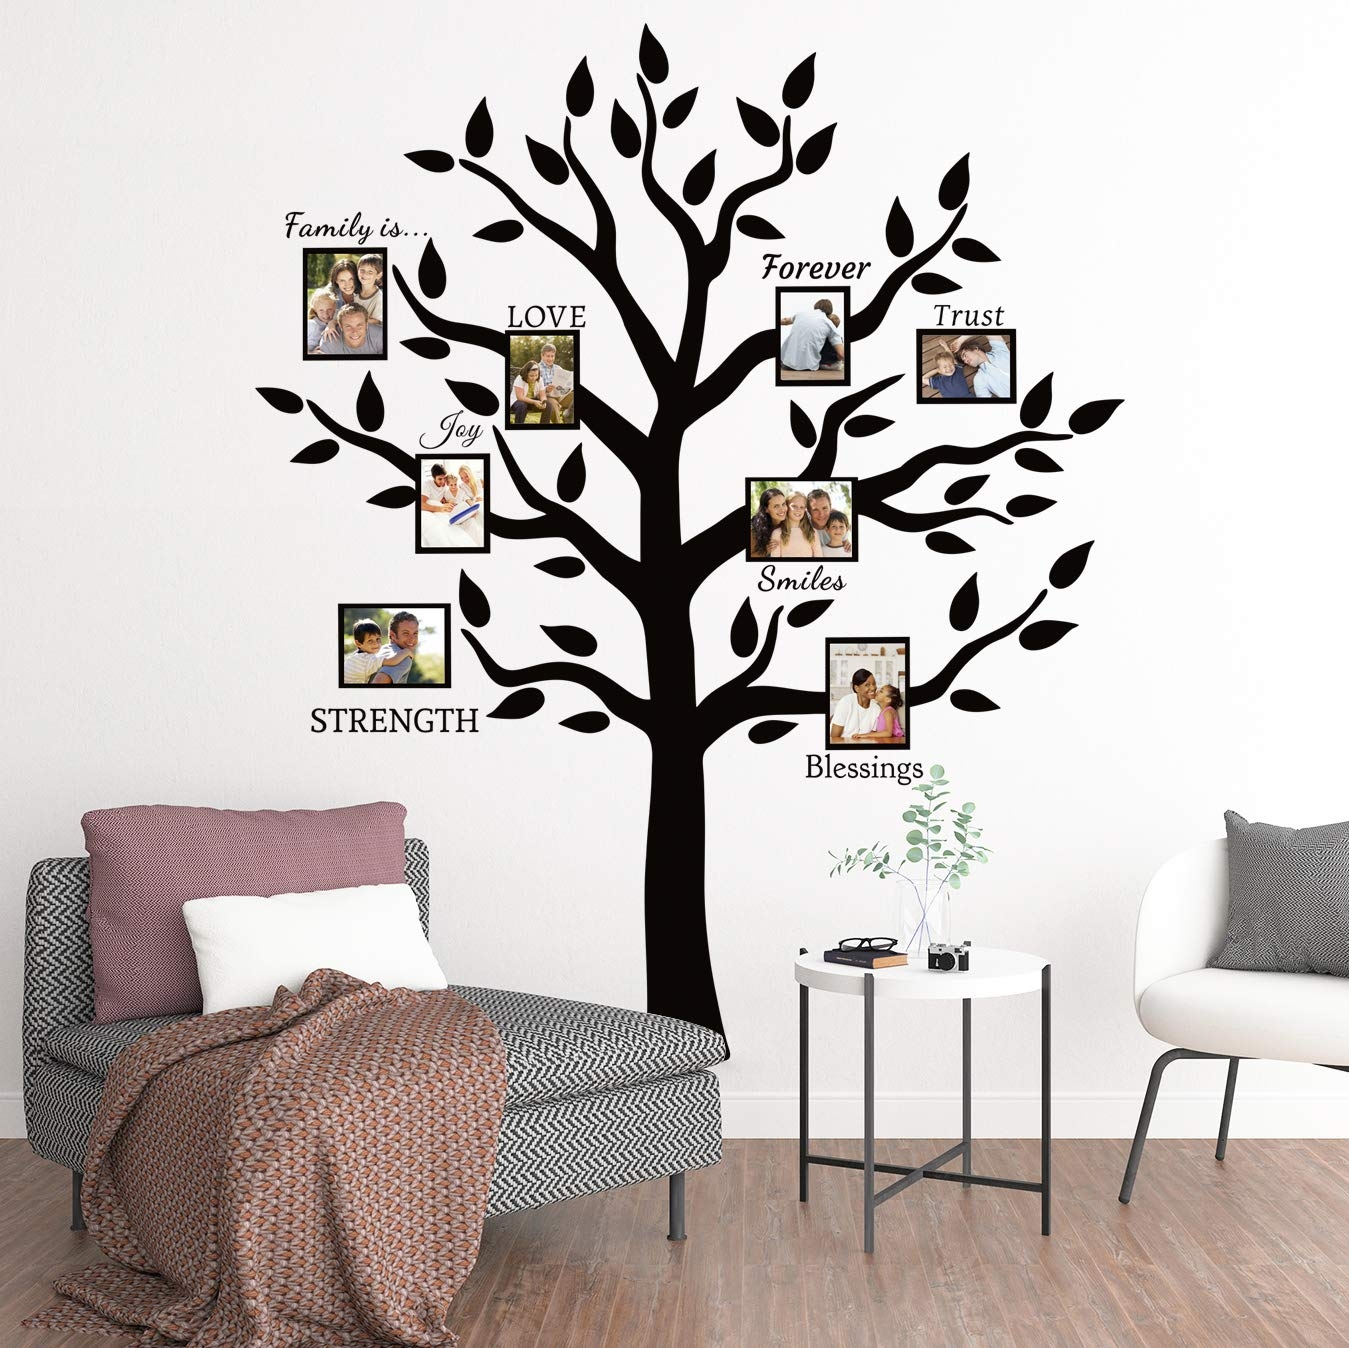 Http Abelhomeremodeling Com 601941 Big Vinyl Wall Decal Lettering Quote Furniture Stickers Html